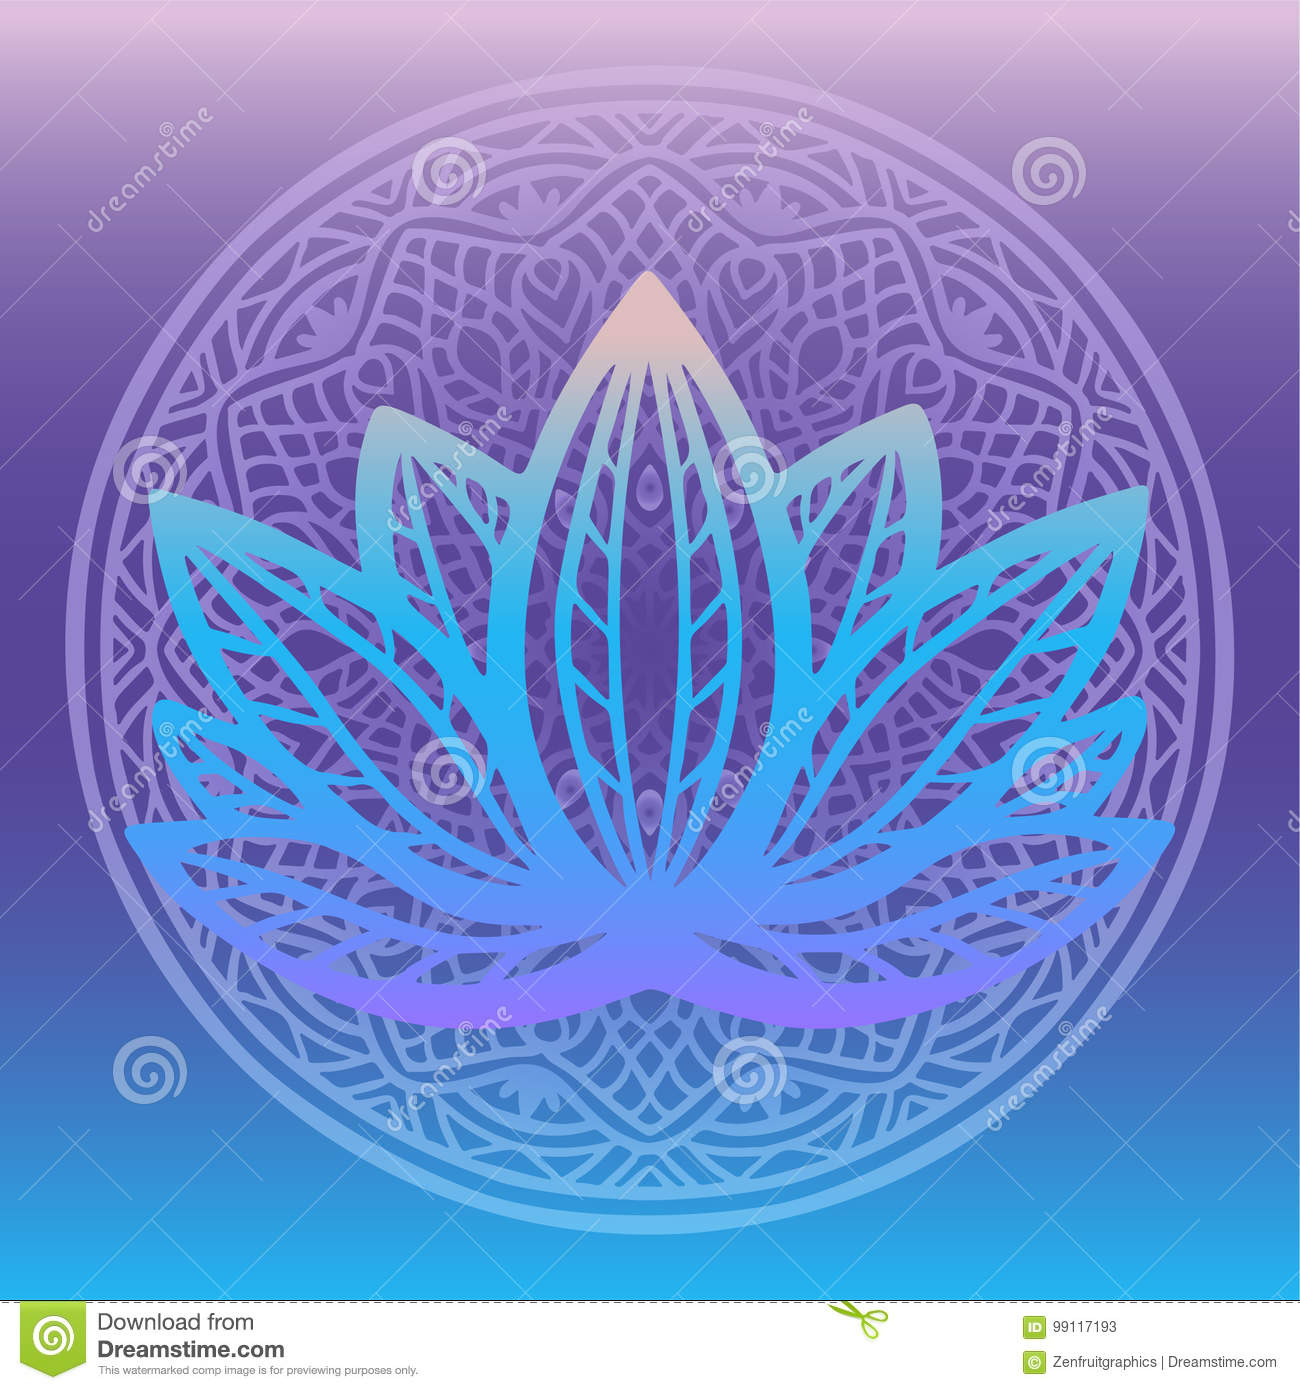 Stylized Lotus Flower Logo In Shades Of Blue And Purple Framed With